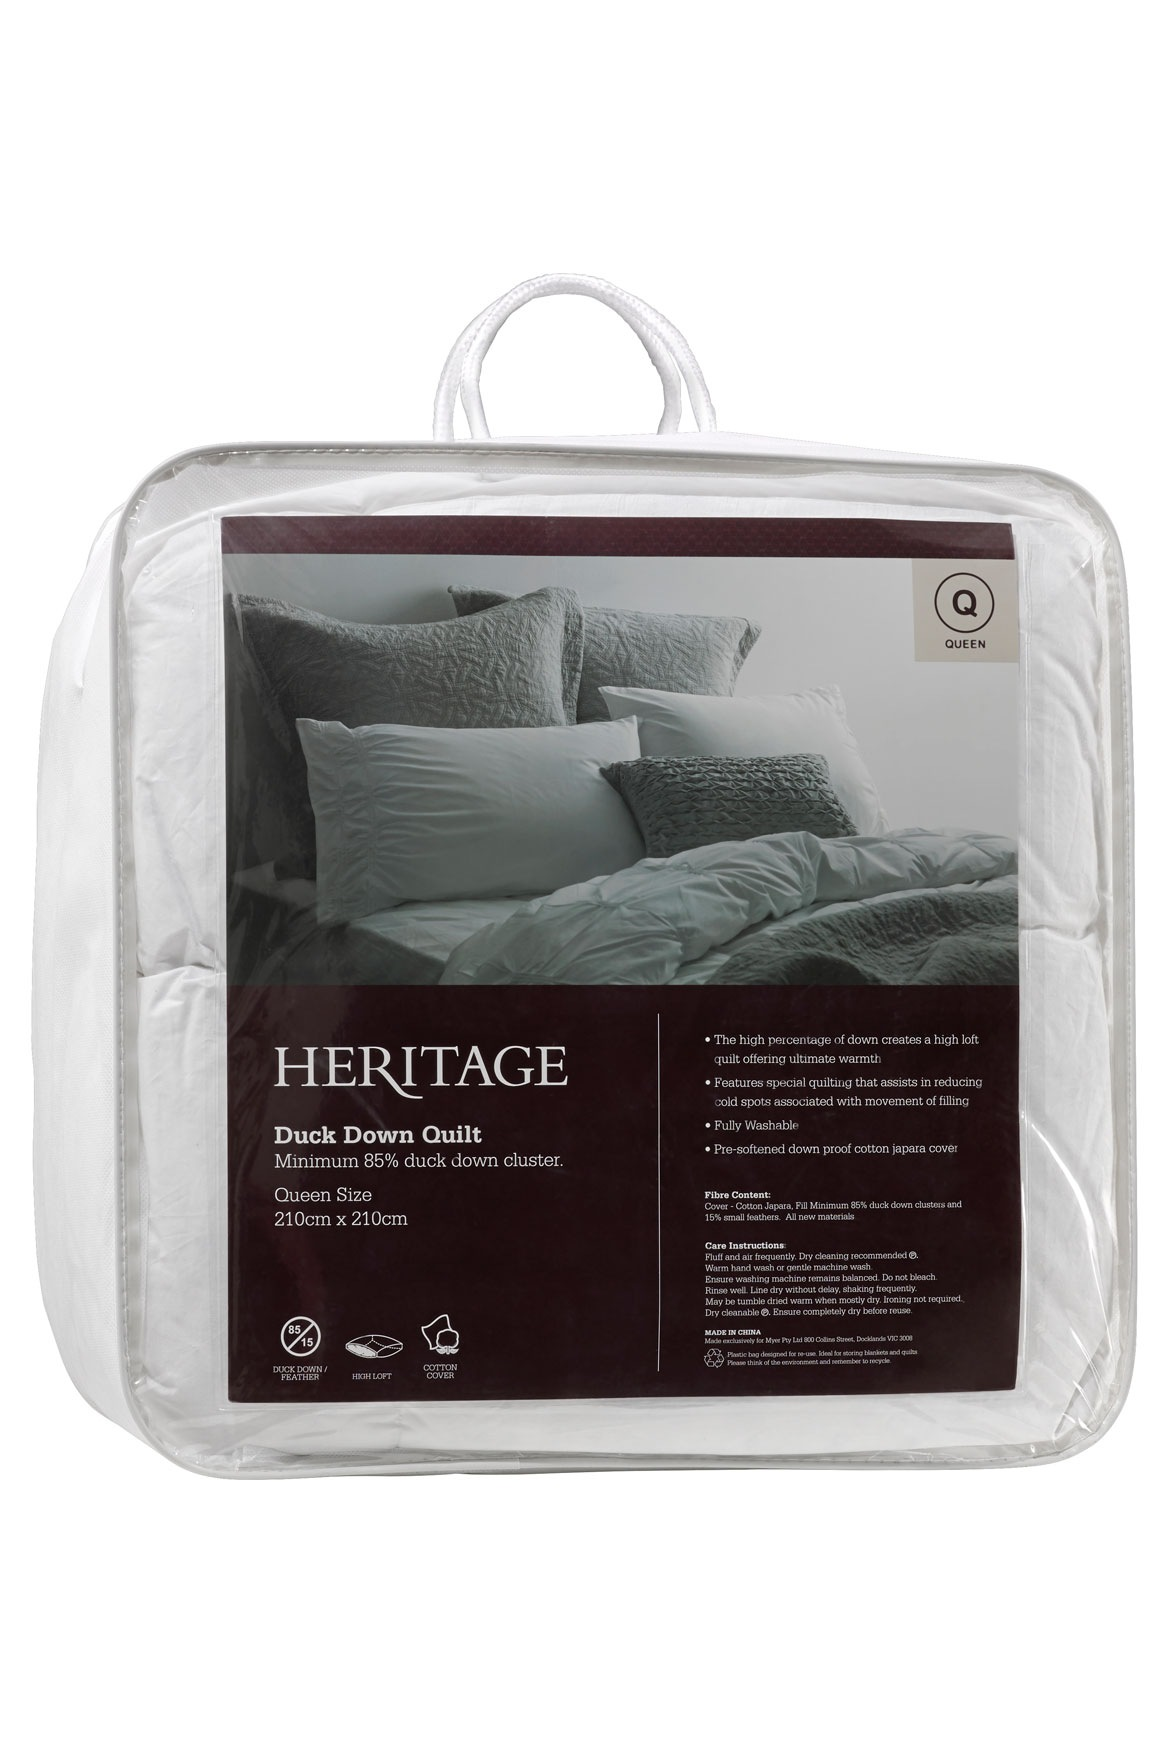 NEW Heritage 85/15 Grey Duck Down & Feather Quilts | eBay : duck down quilt - Adamdwight.com